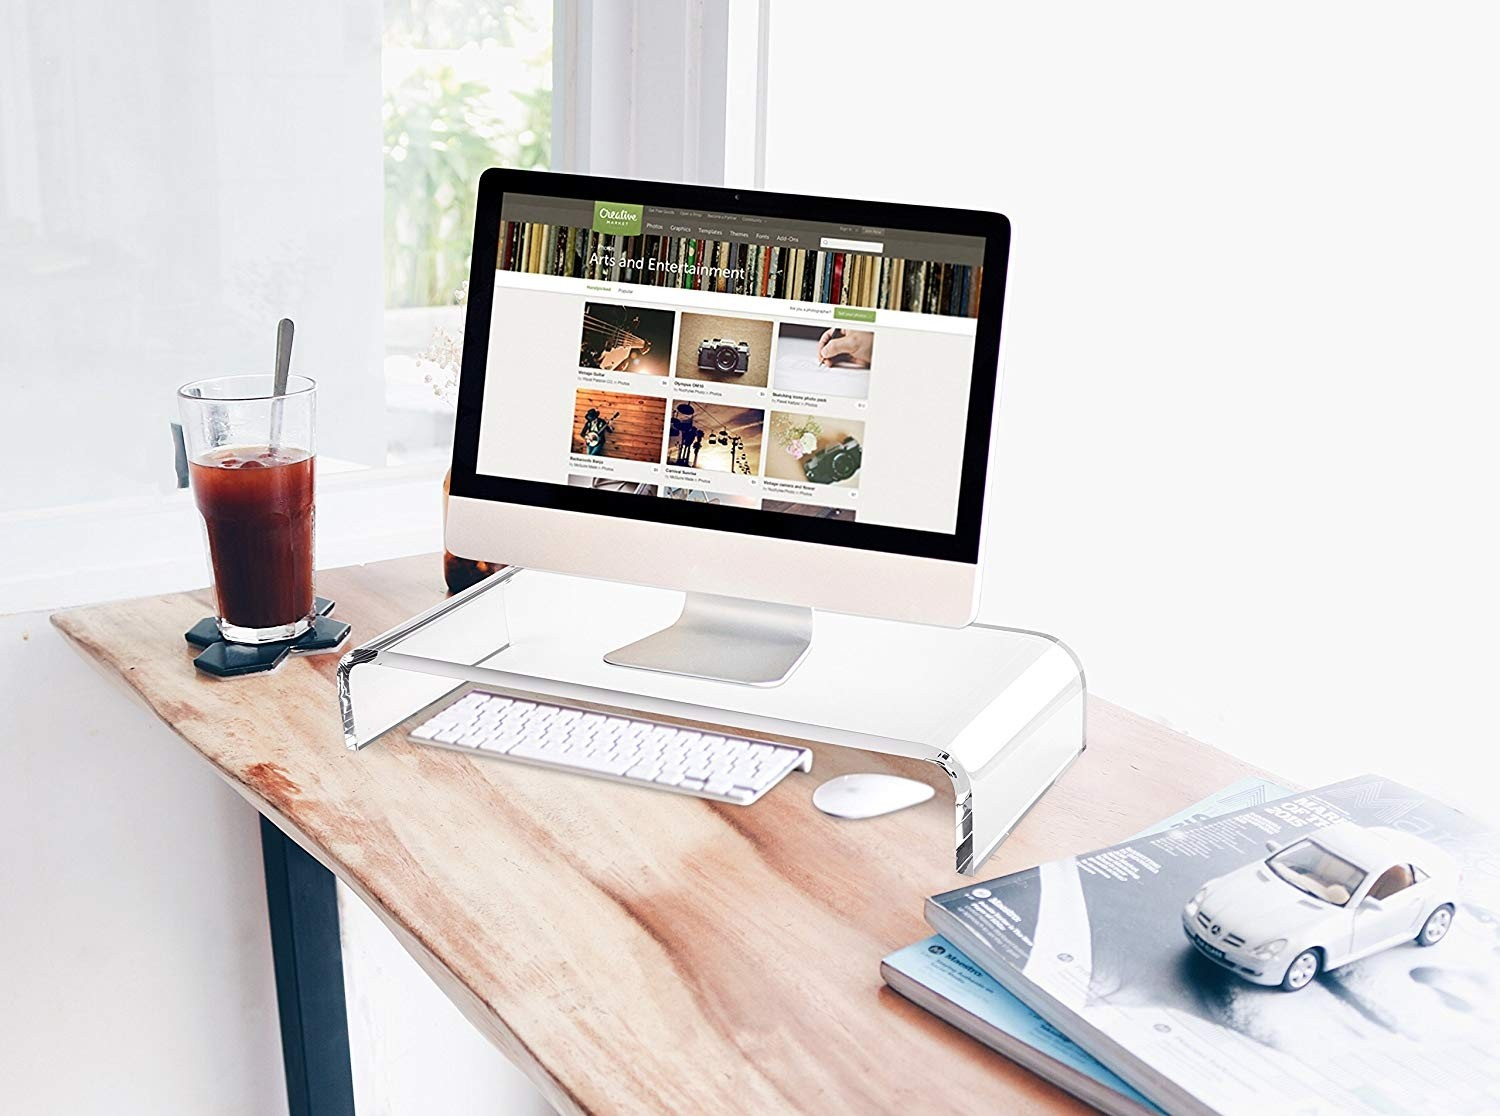 AboveTEK Acrylic Monitor Stand Riser, Crystal Clear iMac Stand Computer Stand Desk Organizer - Transparent, MS-202A